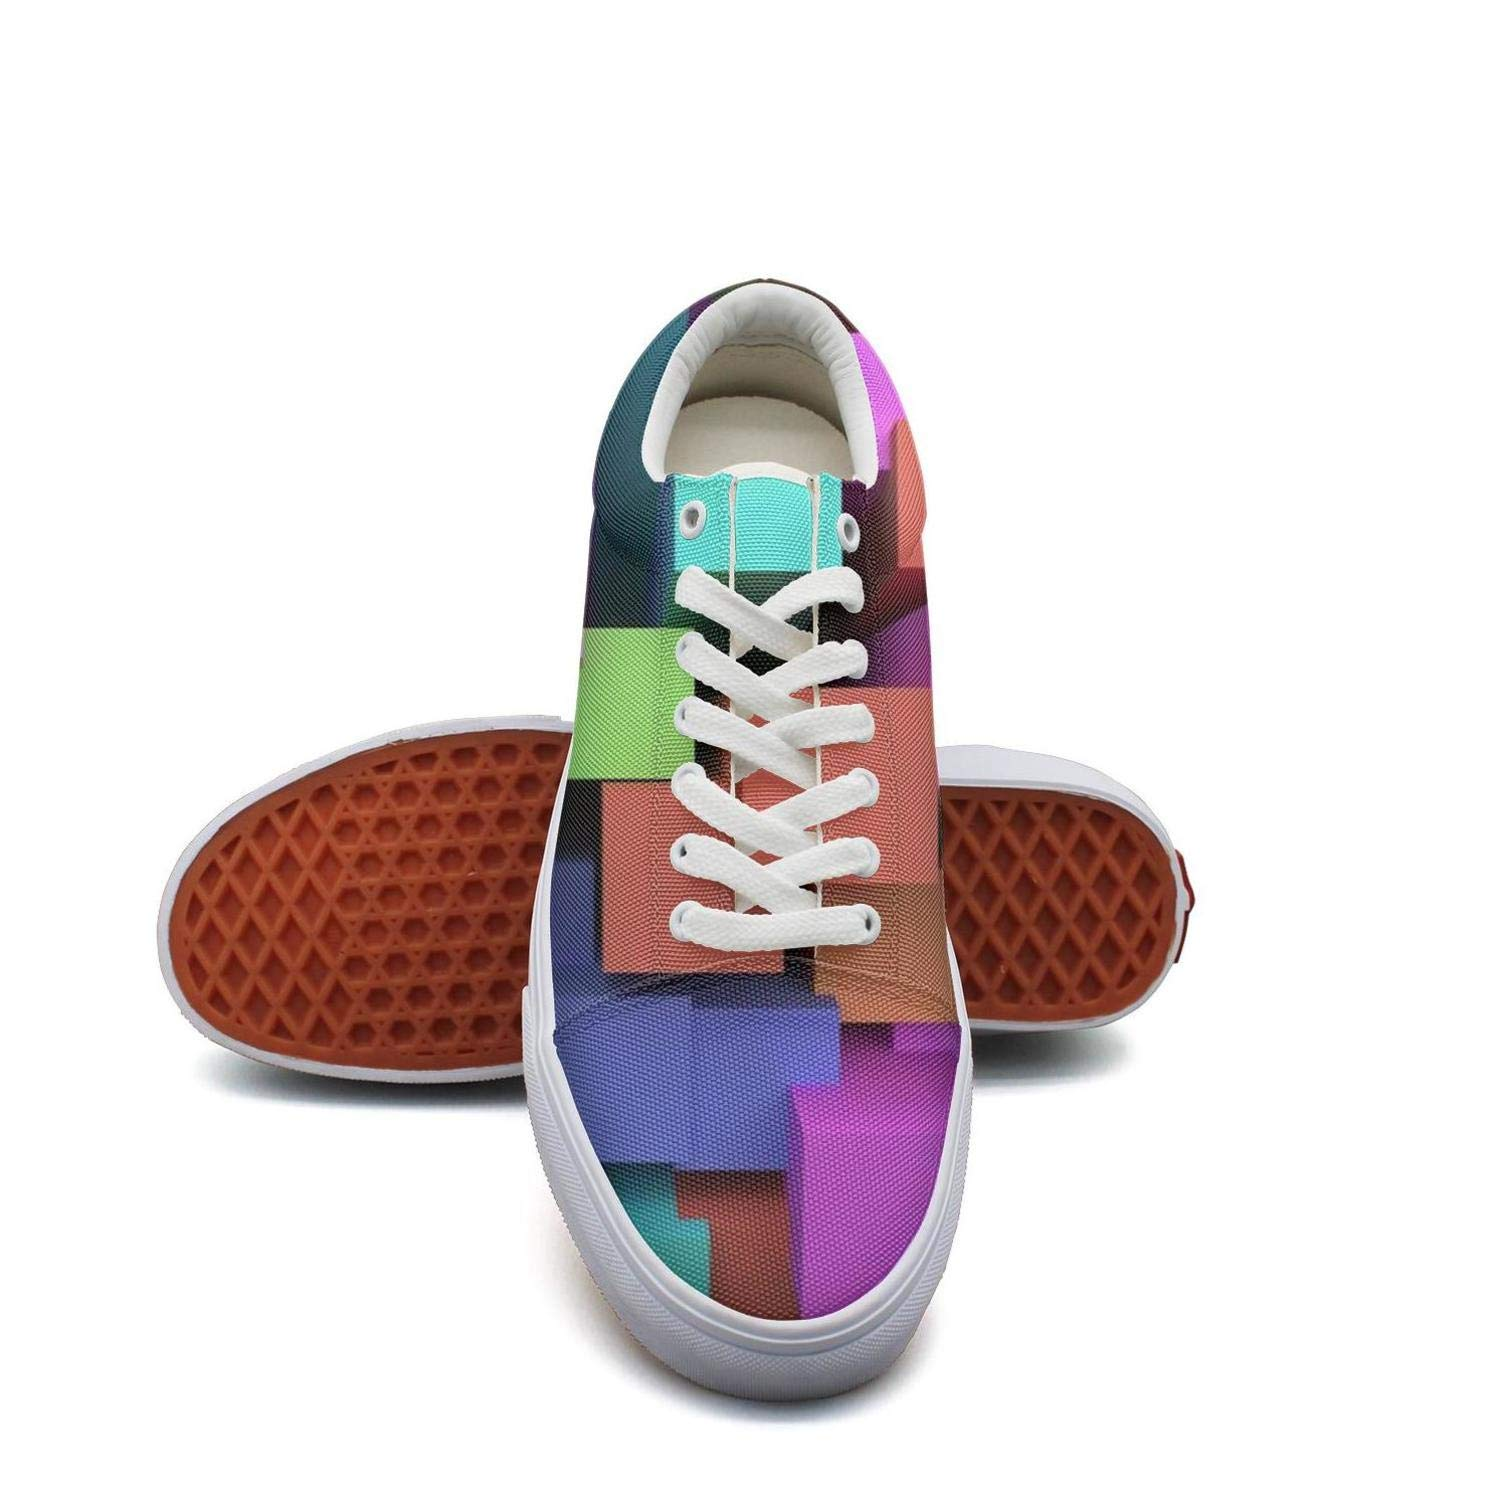 Ouxioaz Womens Canvas Casual Shoes Colorful Cubes in Cubes lace-up Running Shoes